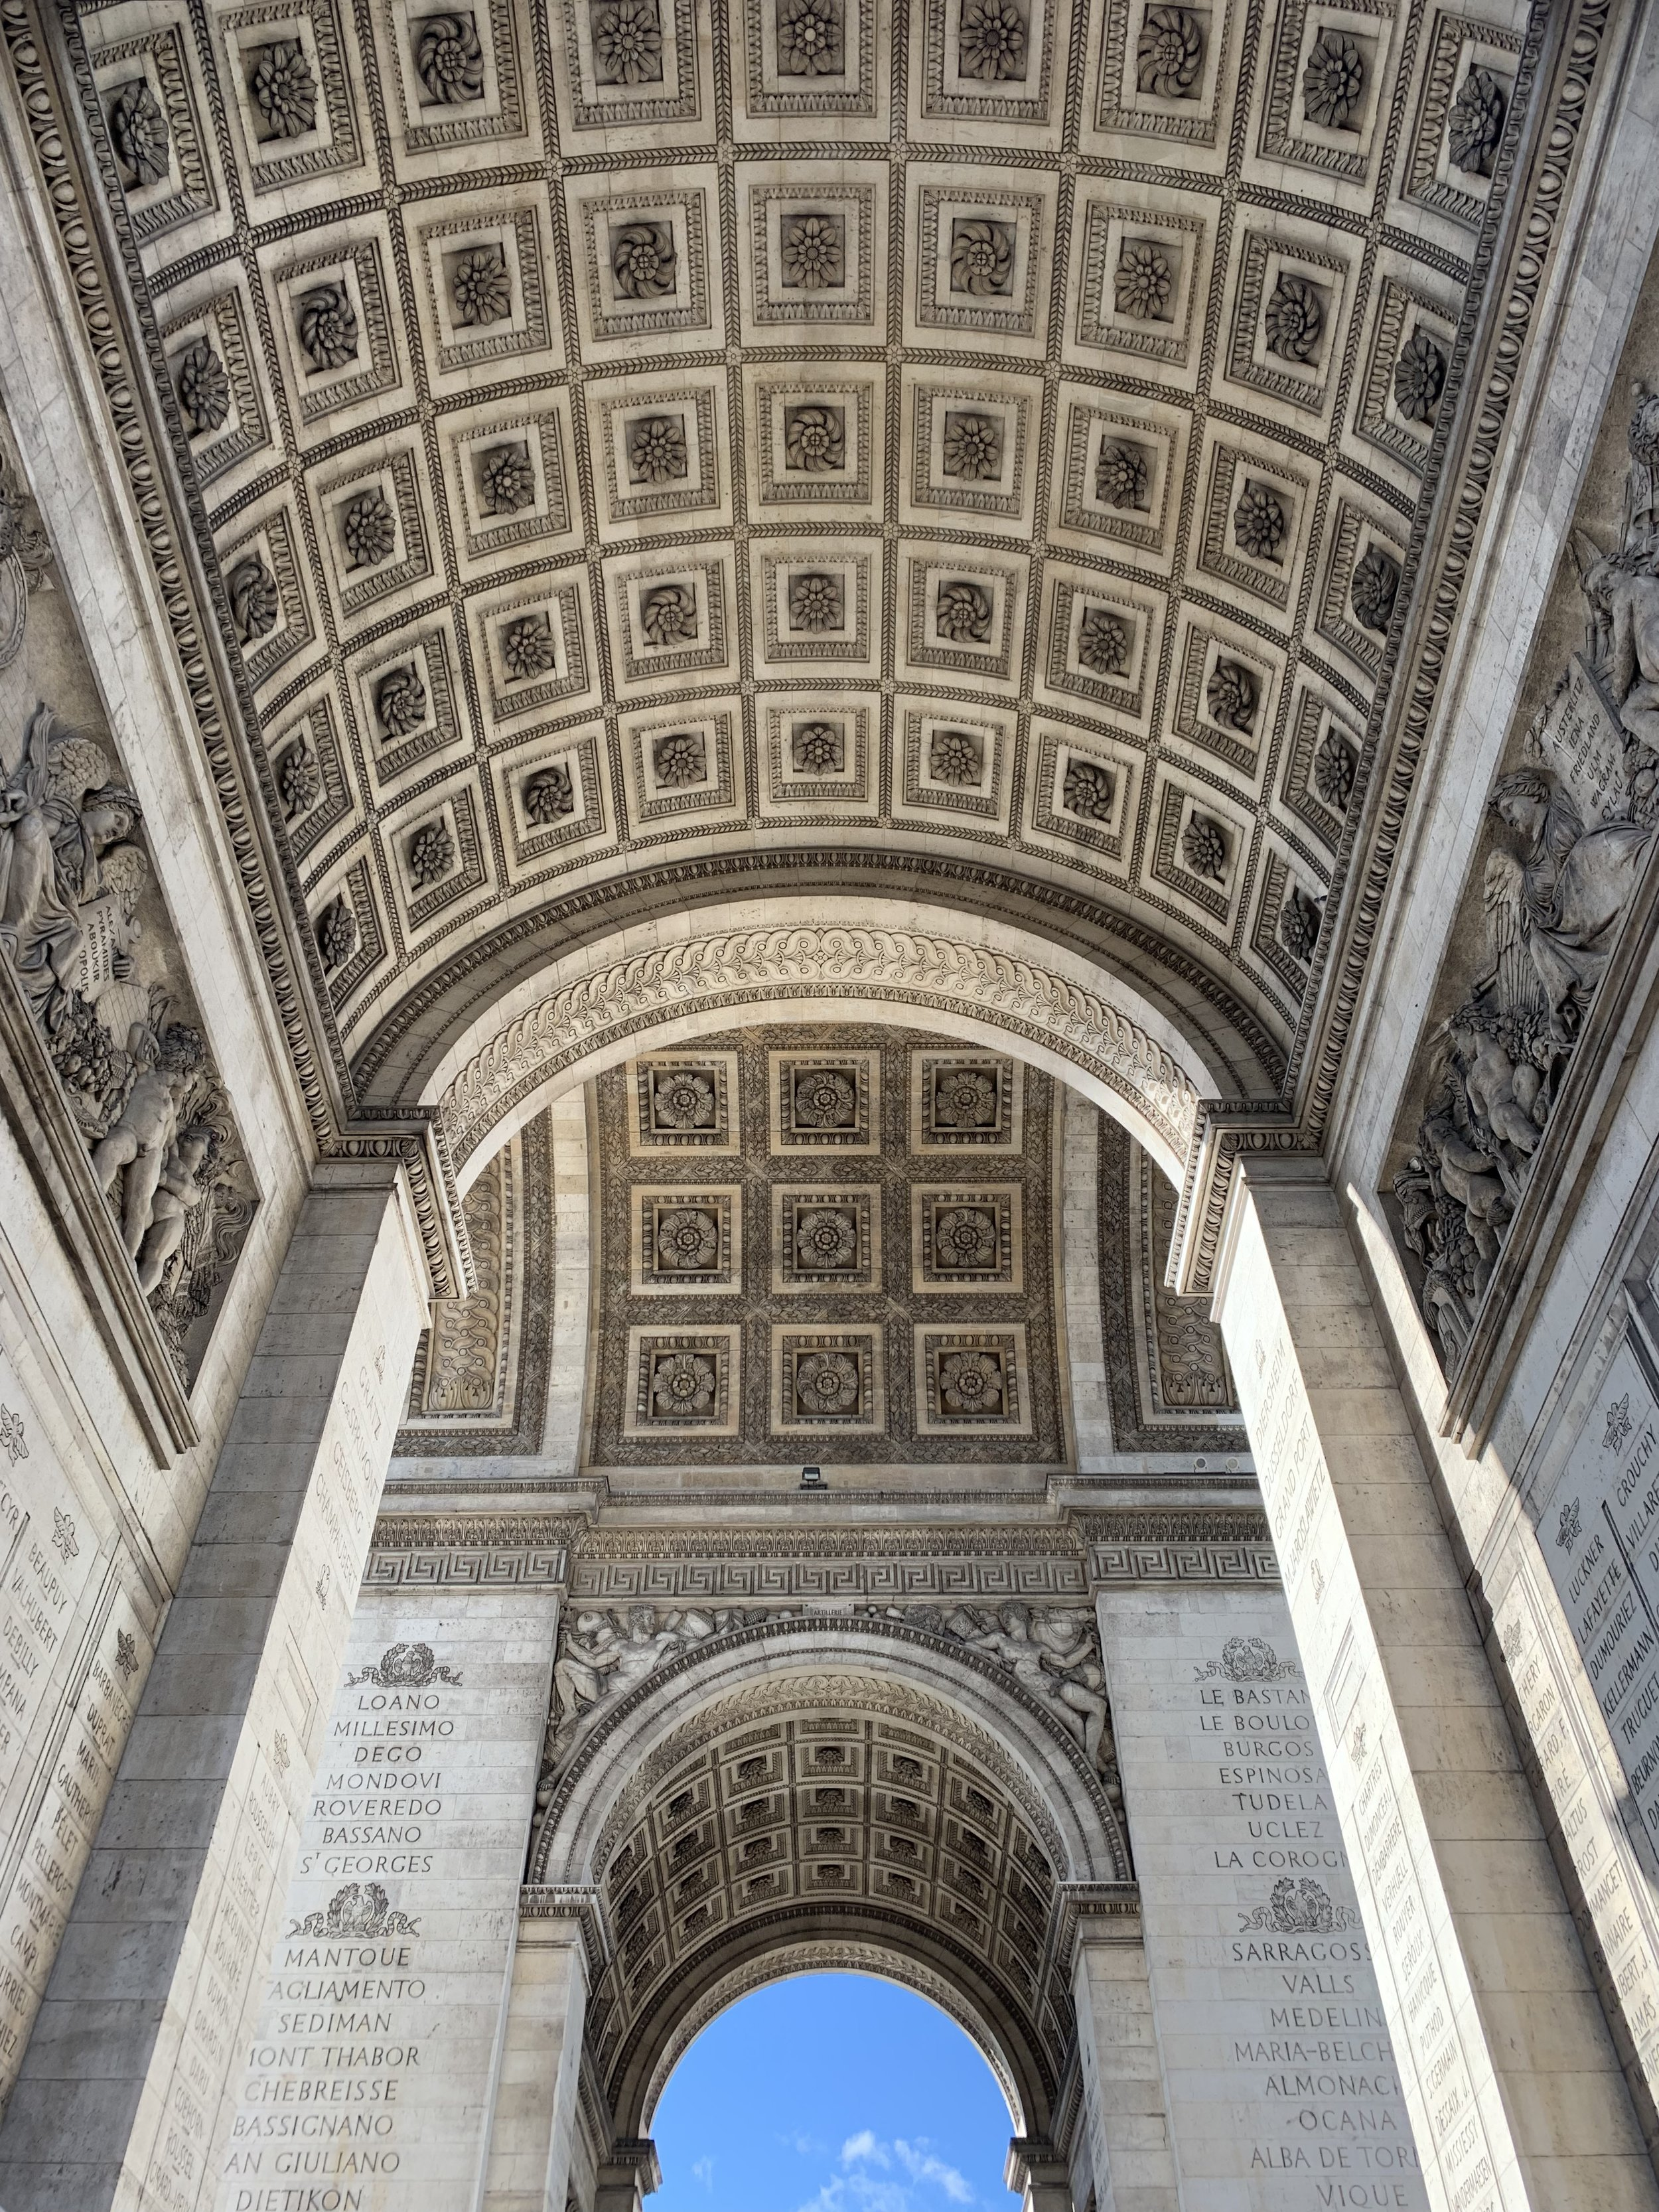 Underneath the Arc De Triomphe